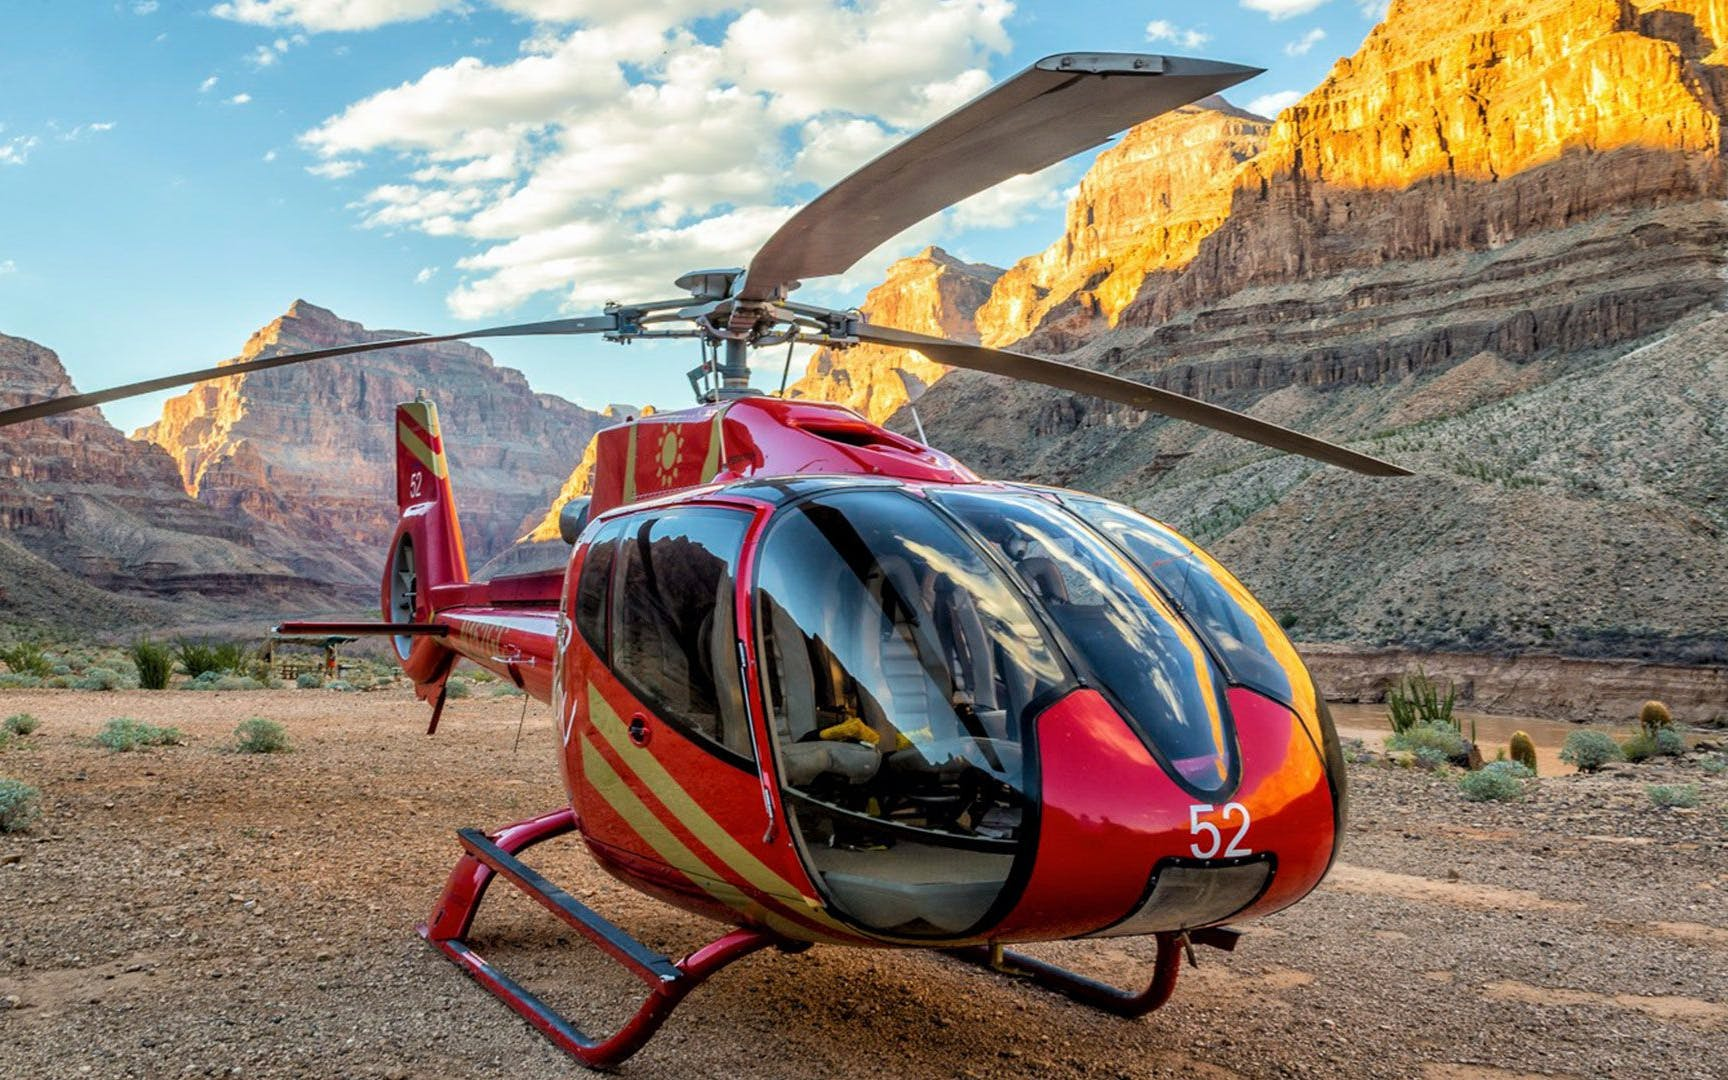 south rim helicopter tour with optional jeep excursion - 30 minutes (self drive)-1